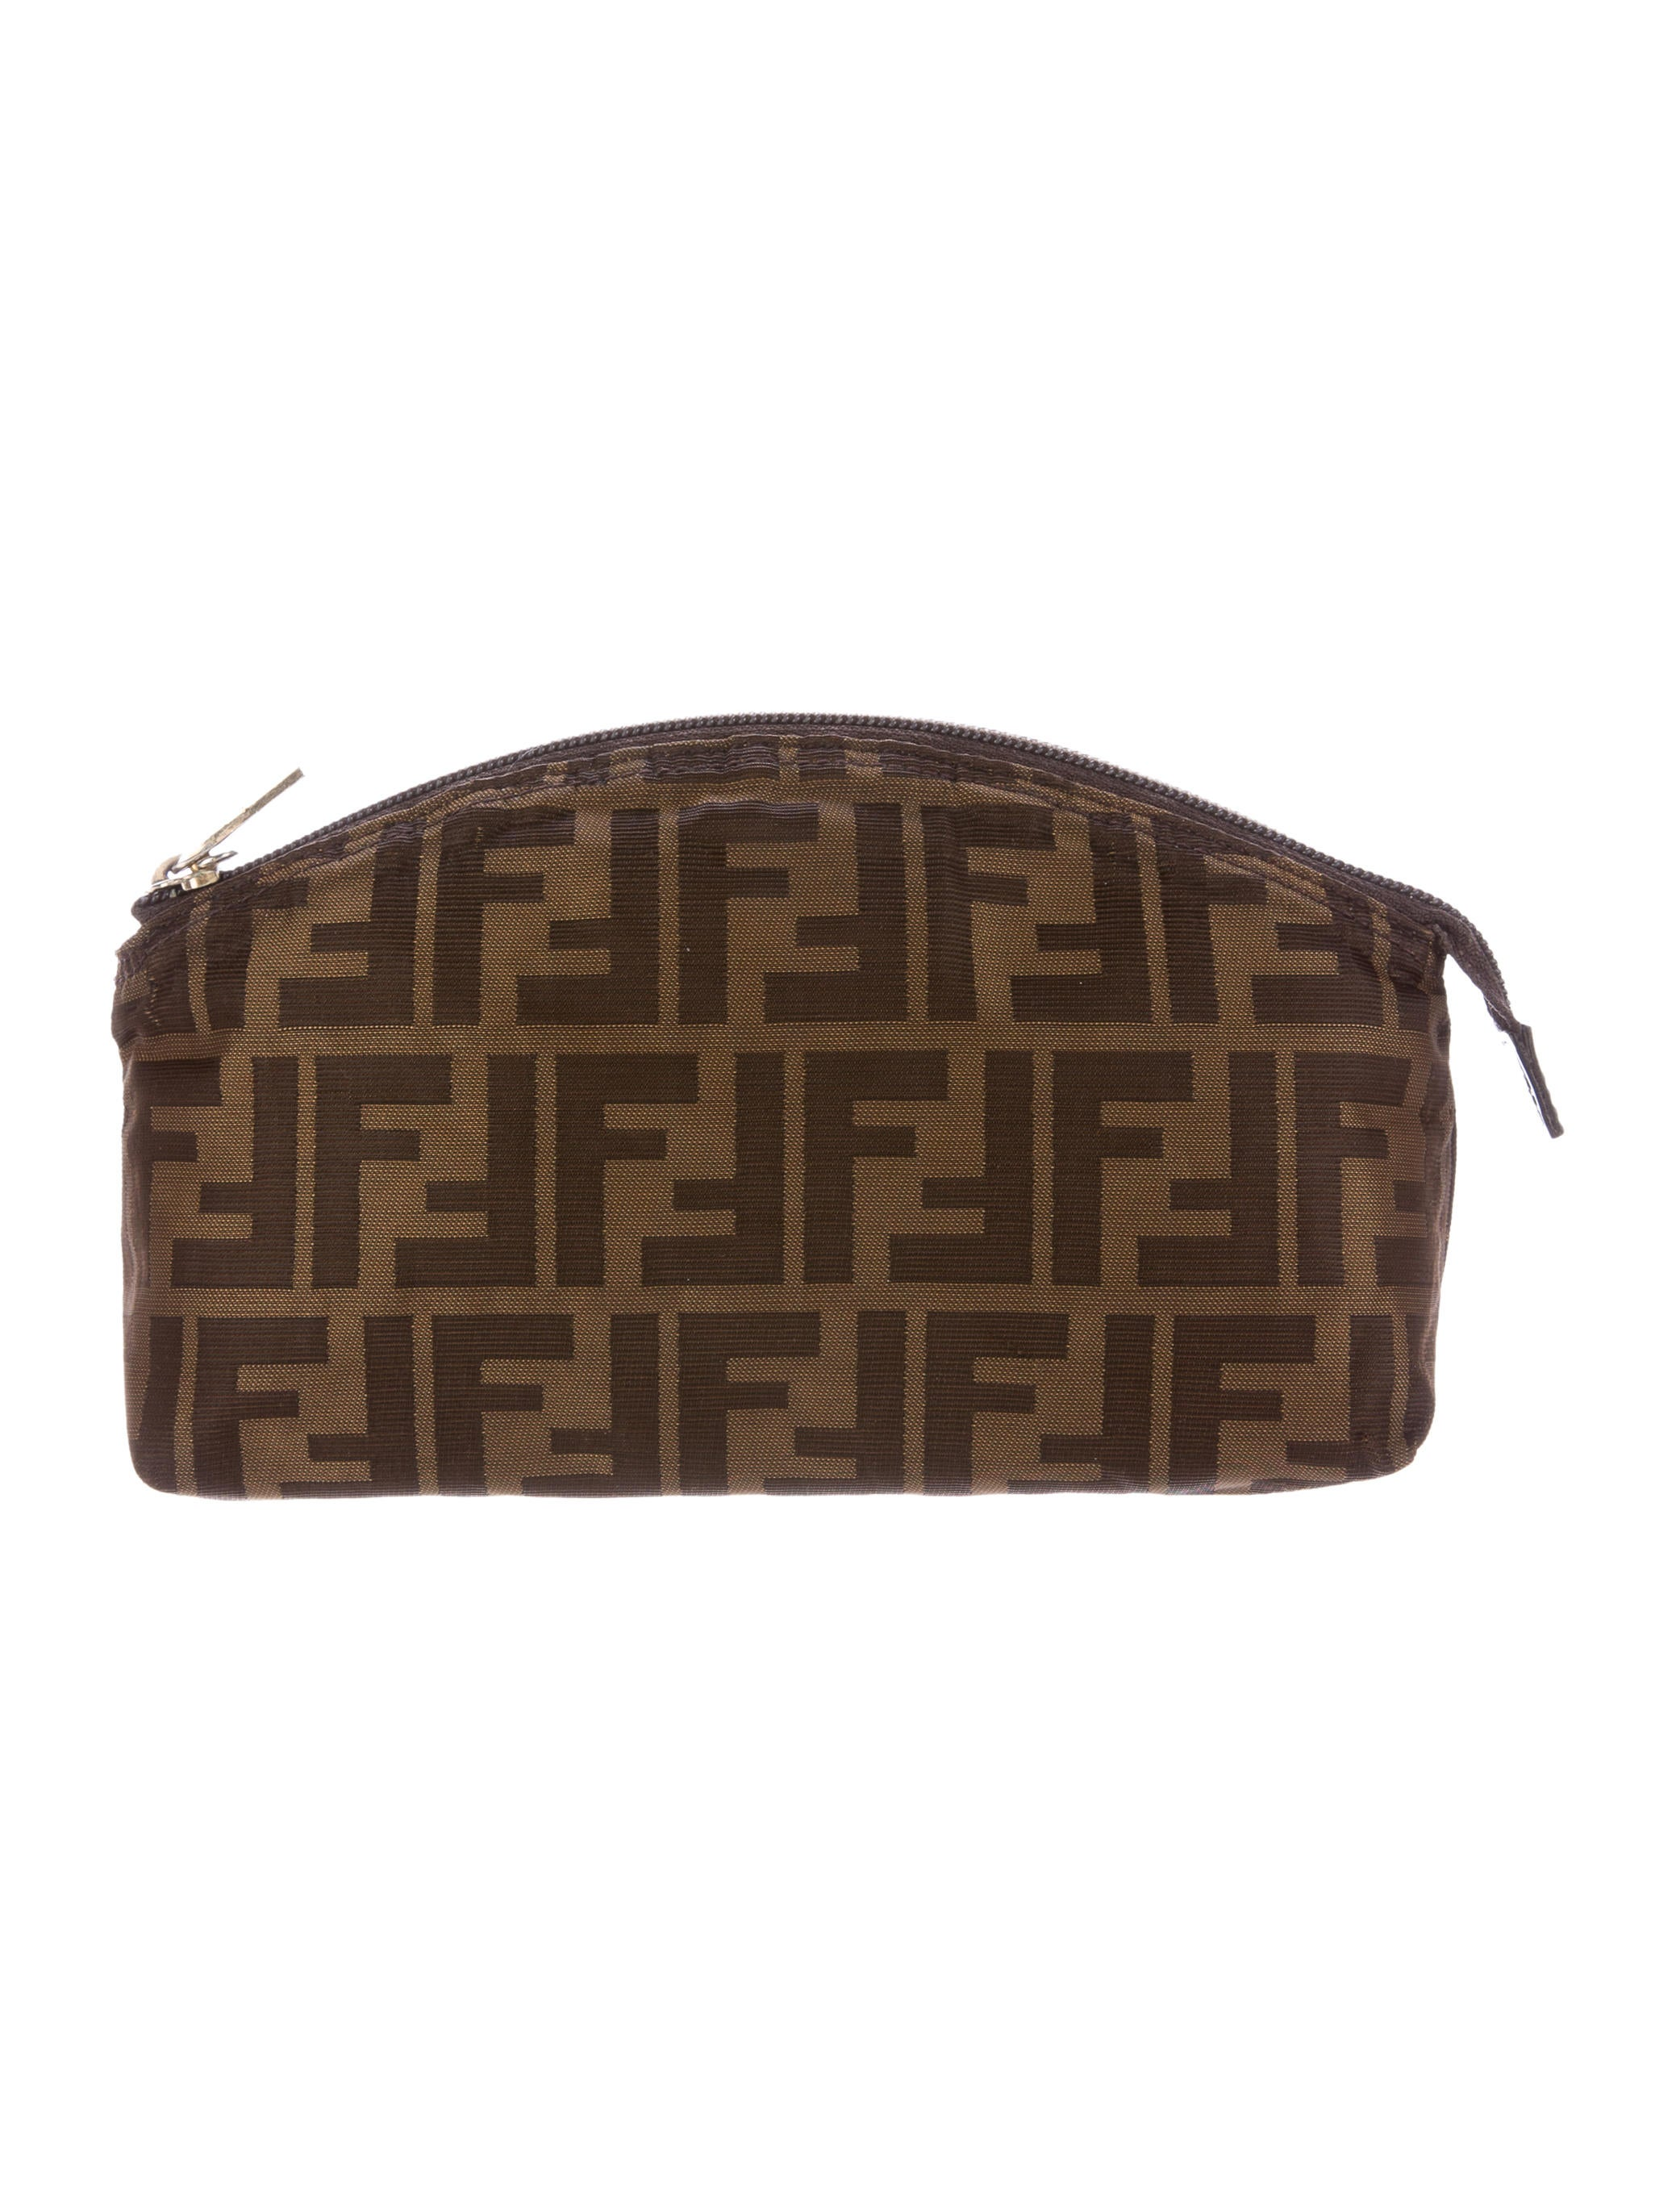 1c62dd1e2208 Fendi Zucca Cosmetic Bag - Accessories - FEN53684